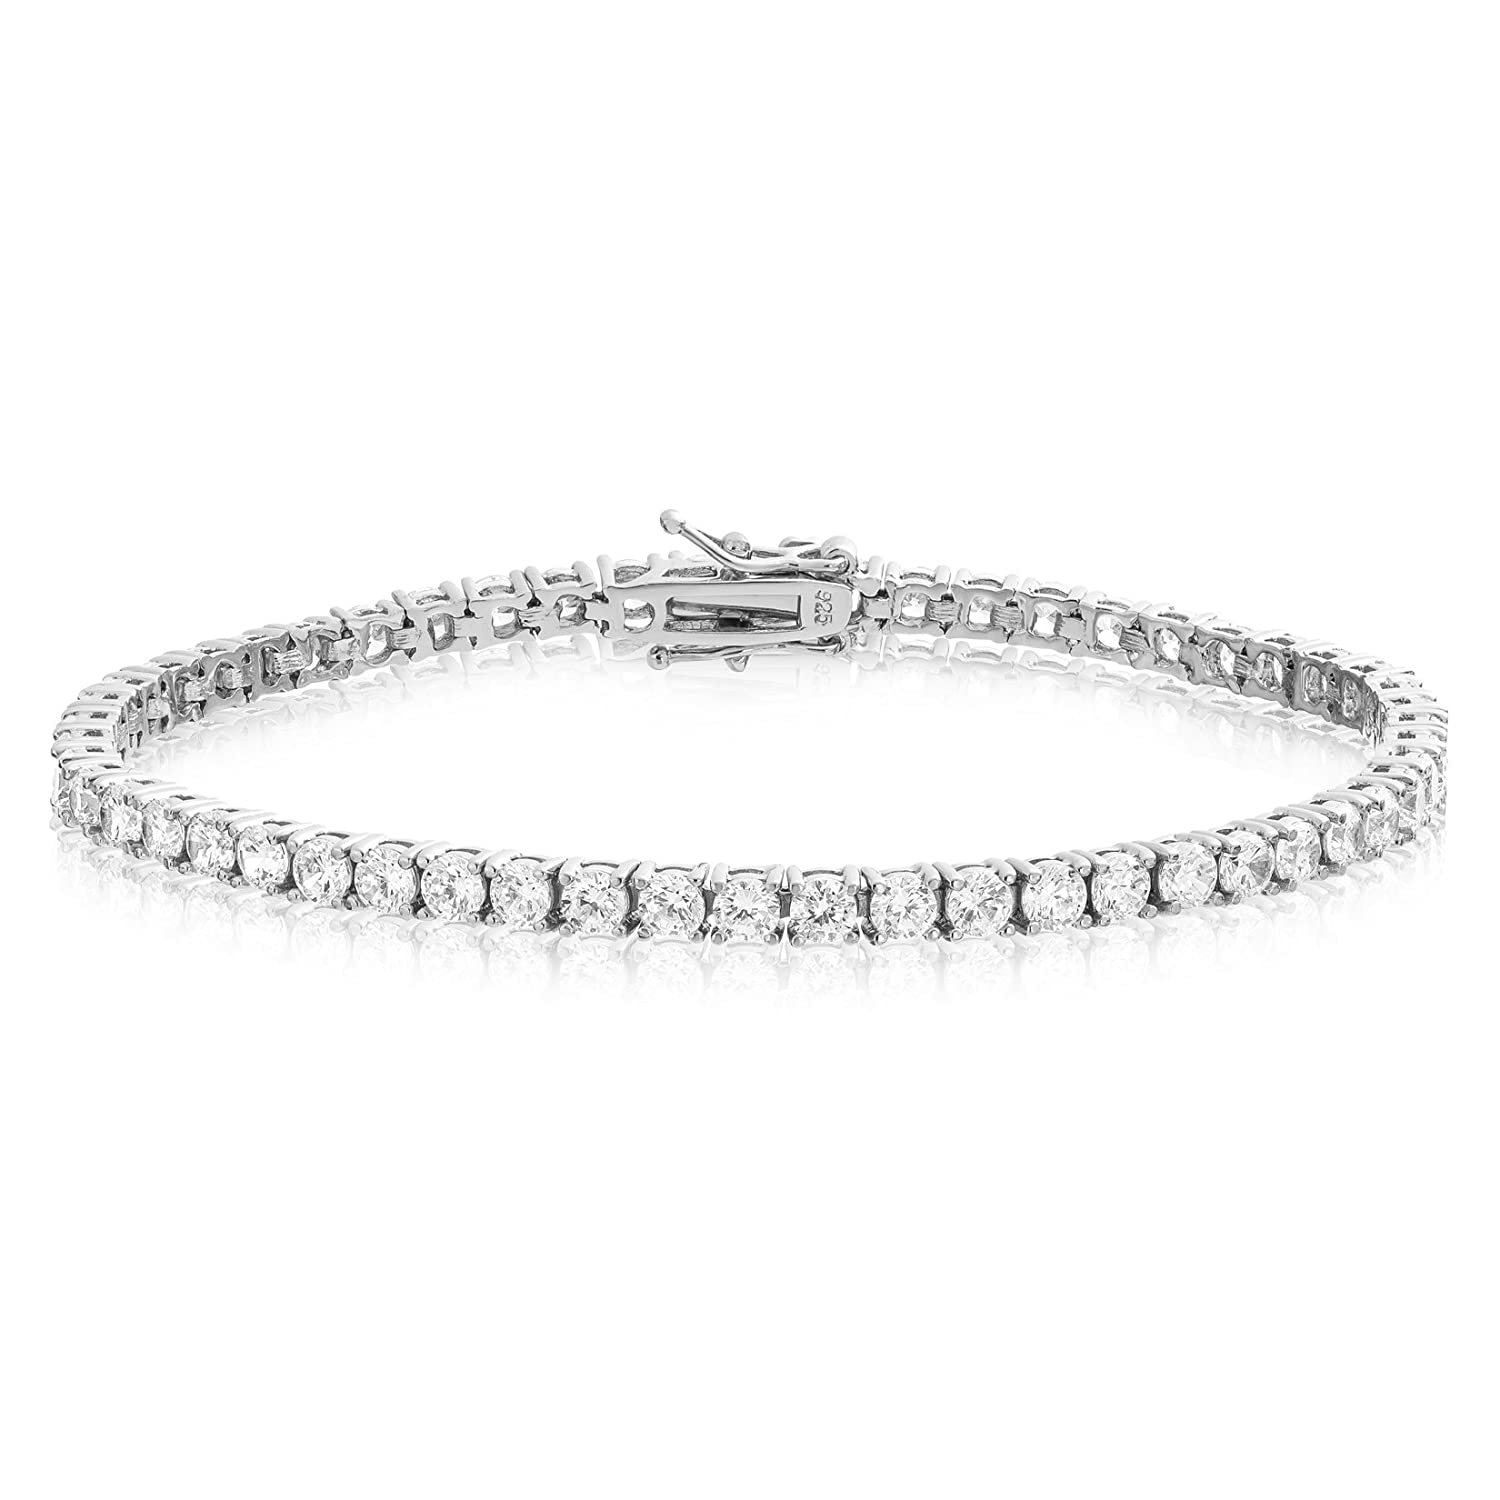 products silver by collections sterling bangles mikolay desires bar diamond bangle bling bracelet